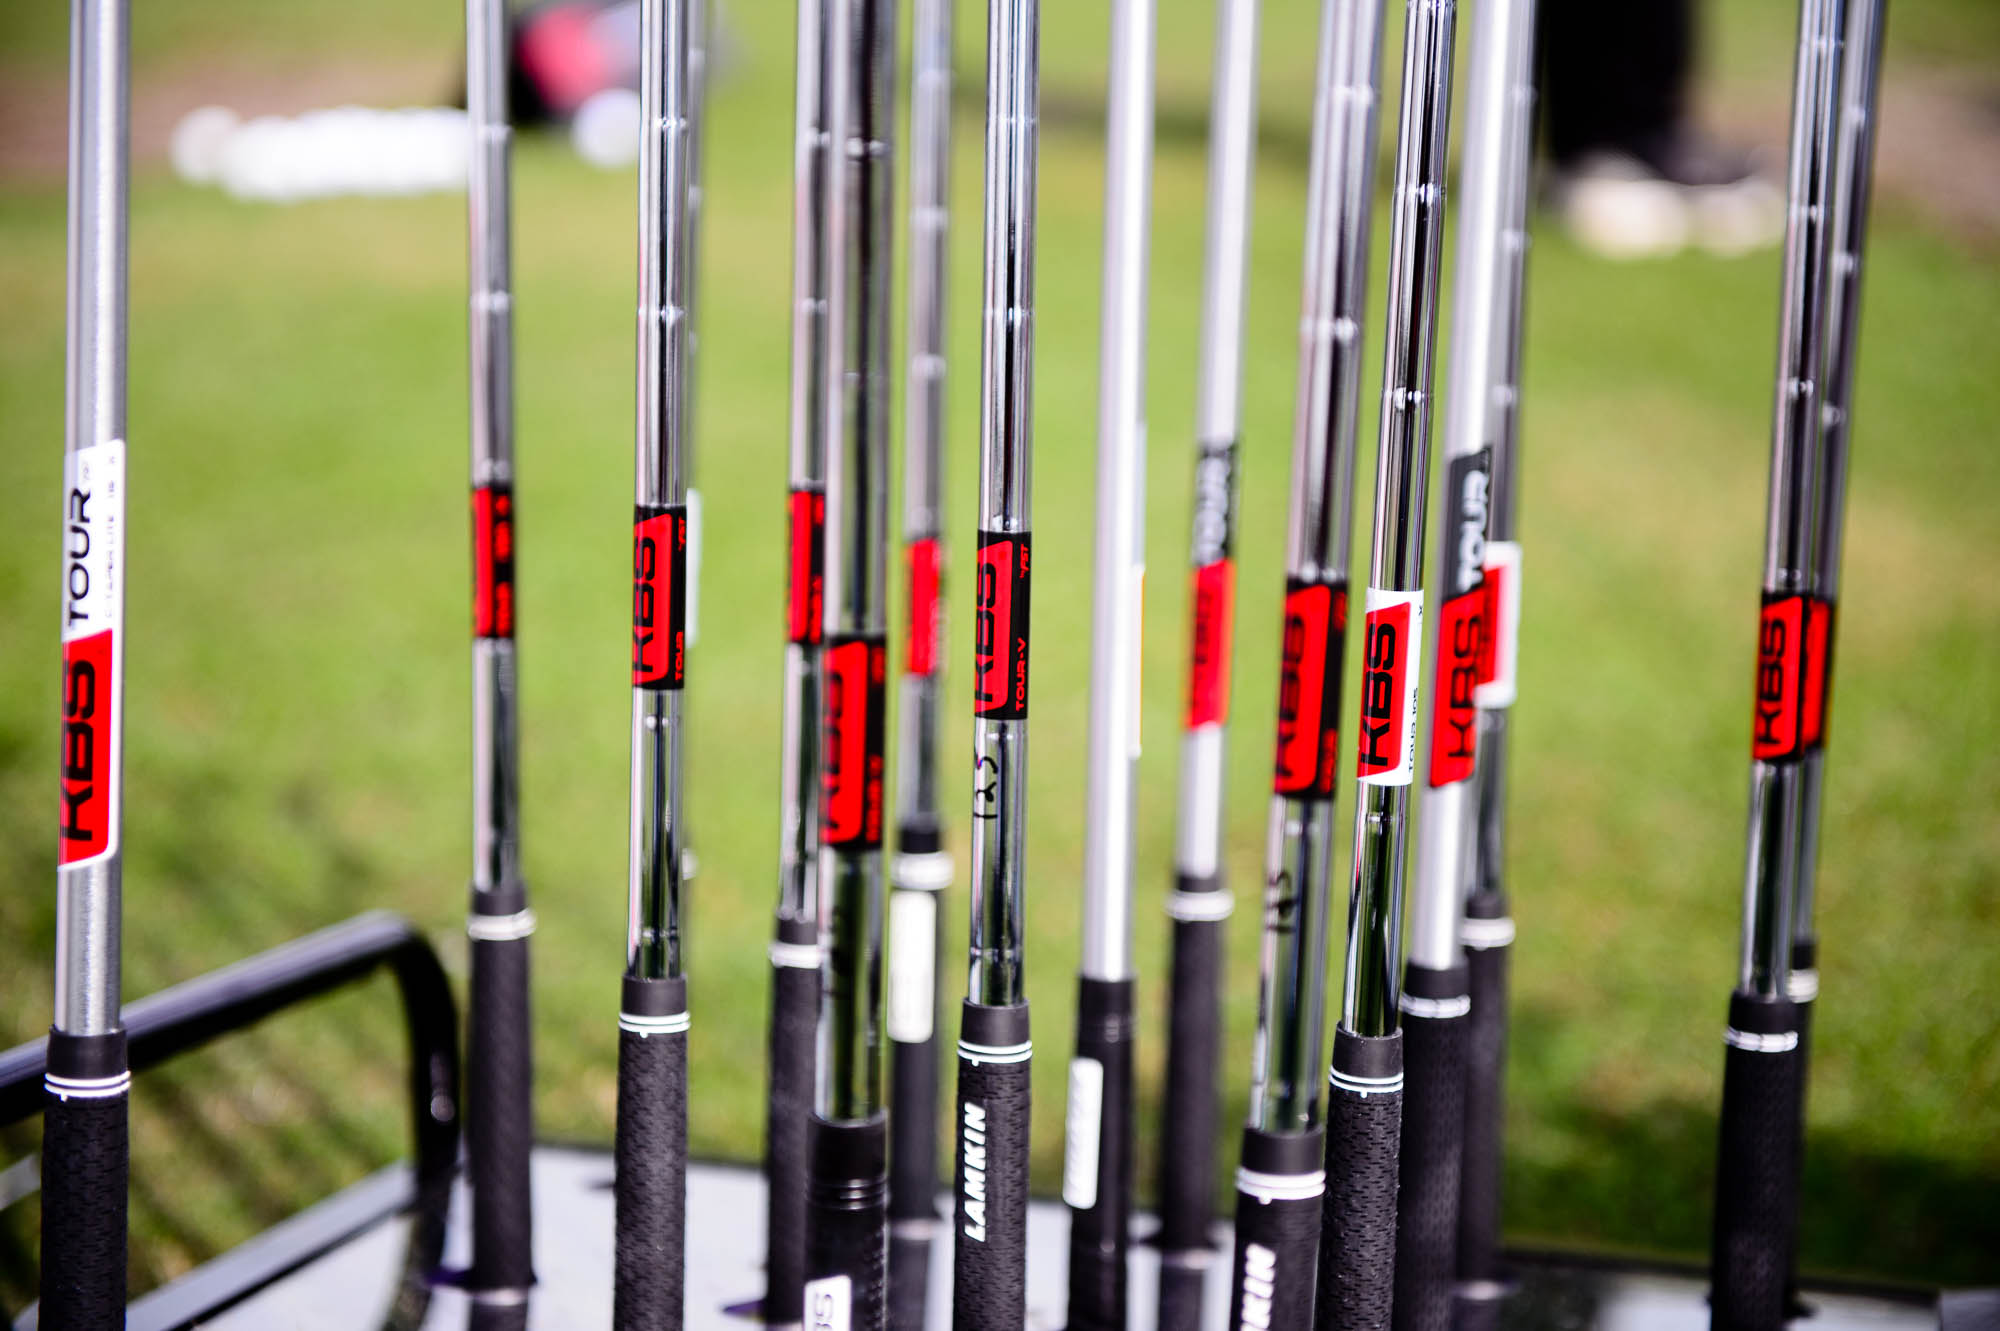 KBS iron and wedge shafts